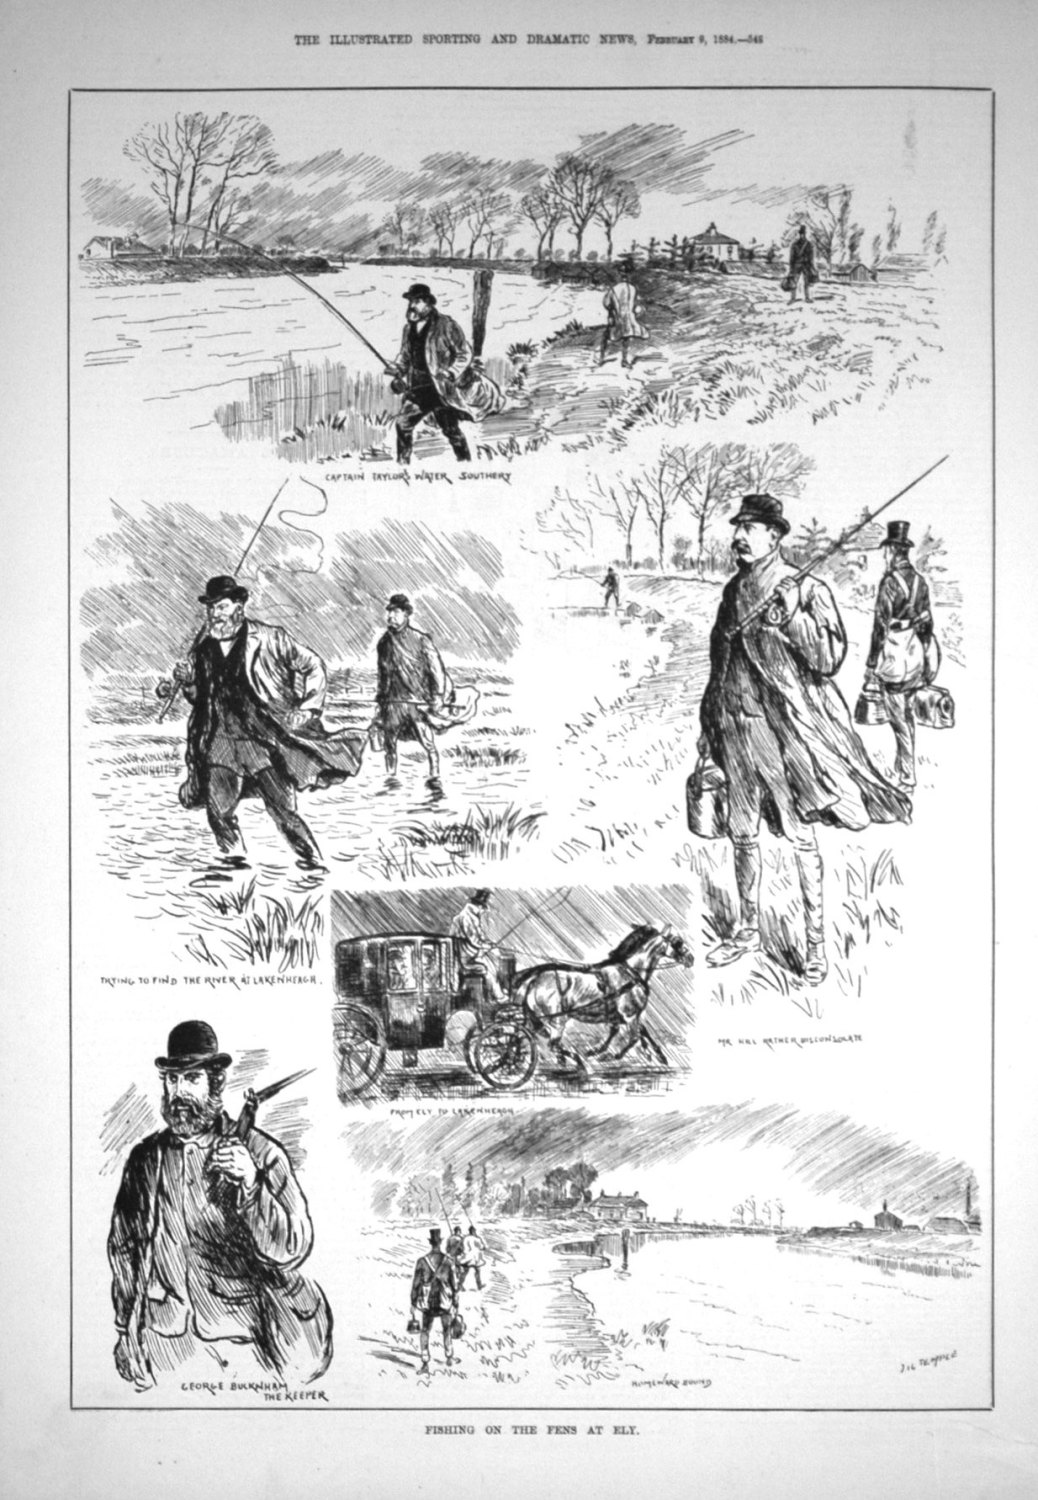 Fishing on the Fens at Ely. 1884